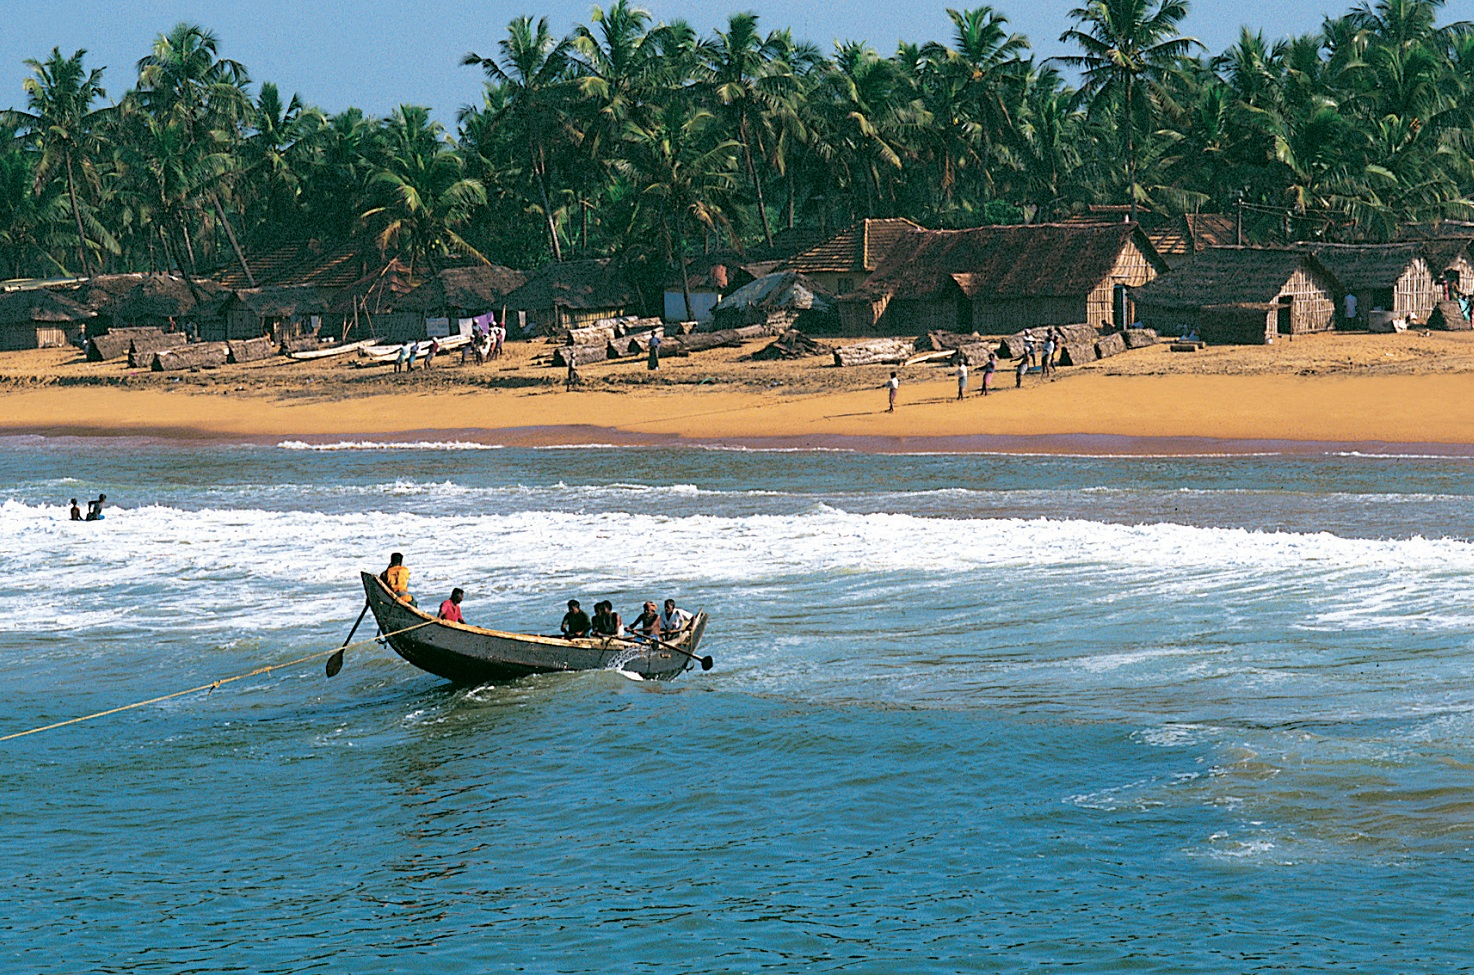 North and south india vacation spots travel around the for Vacation spots around the world